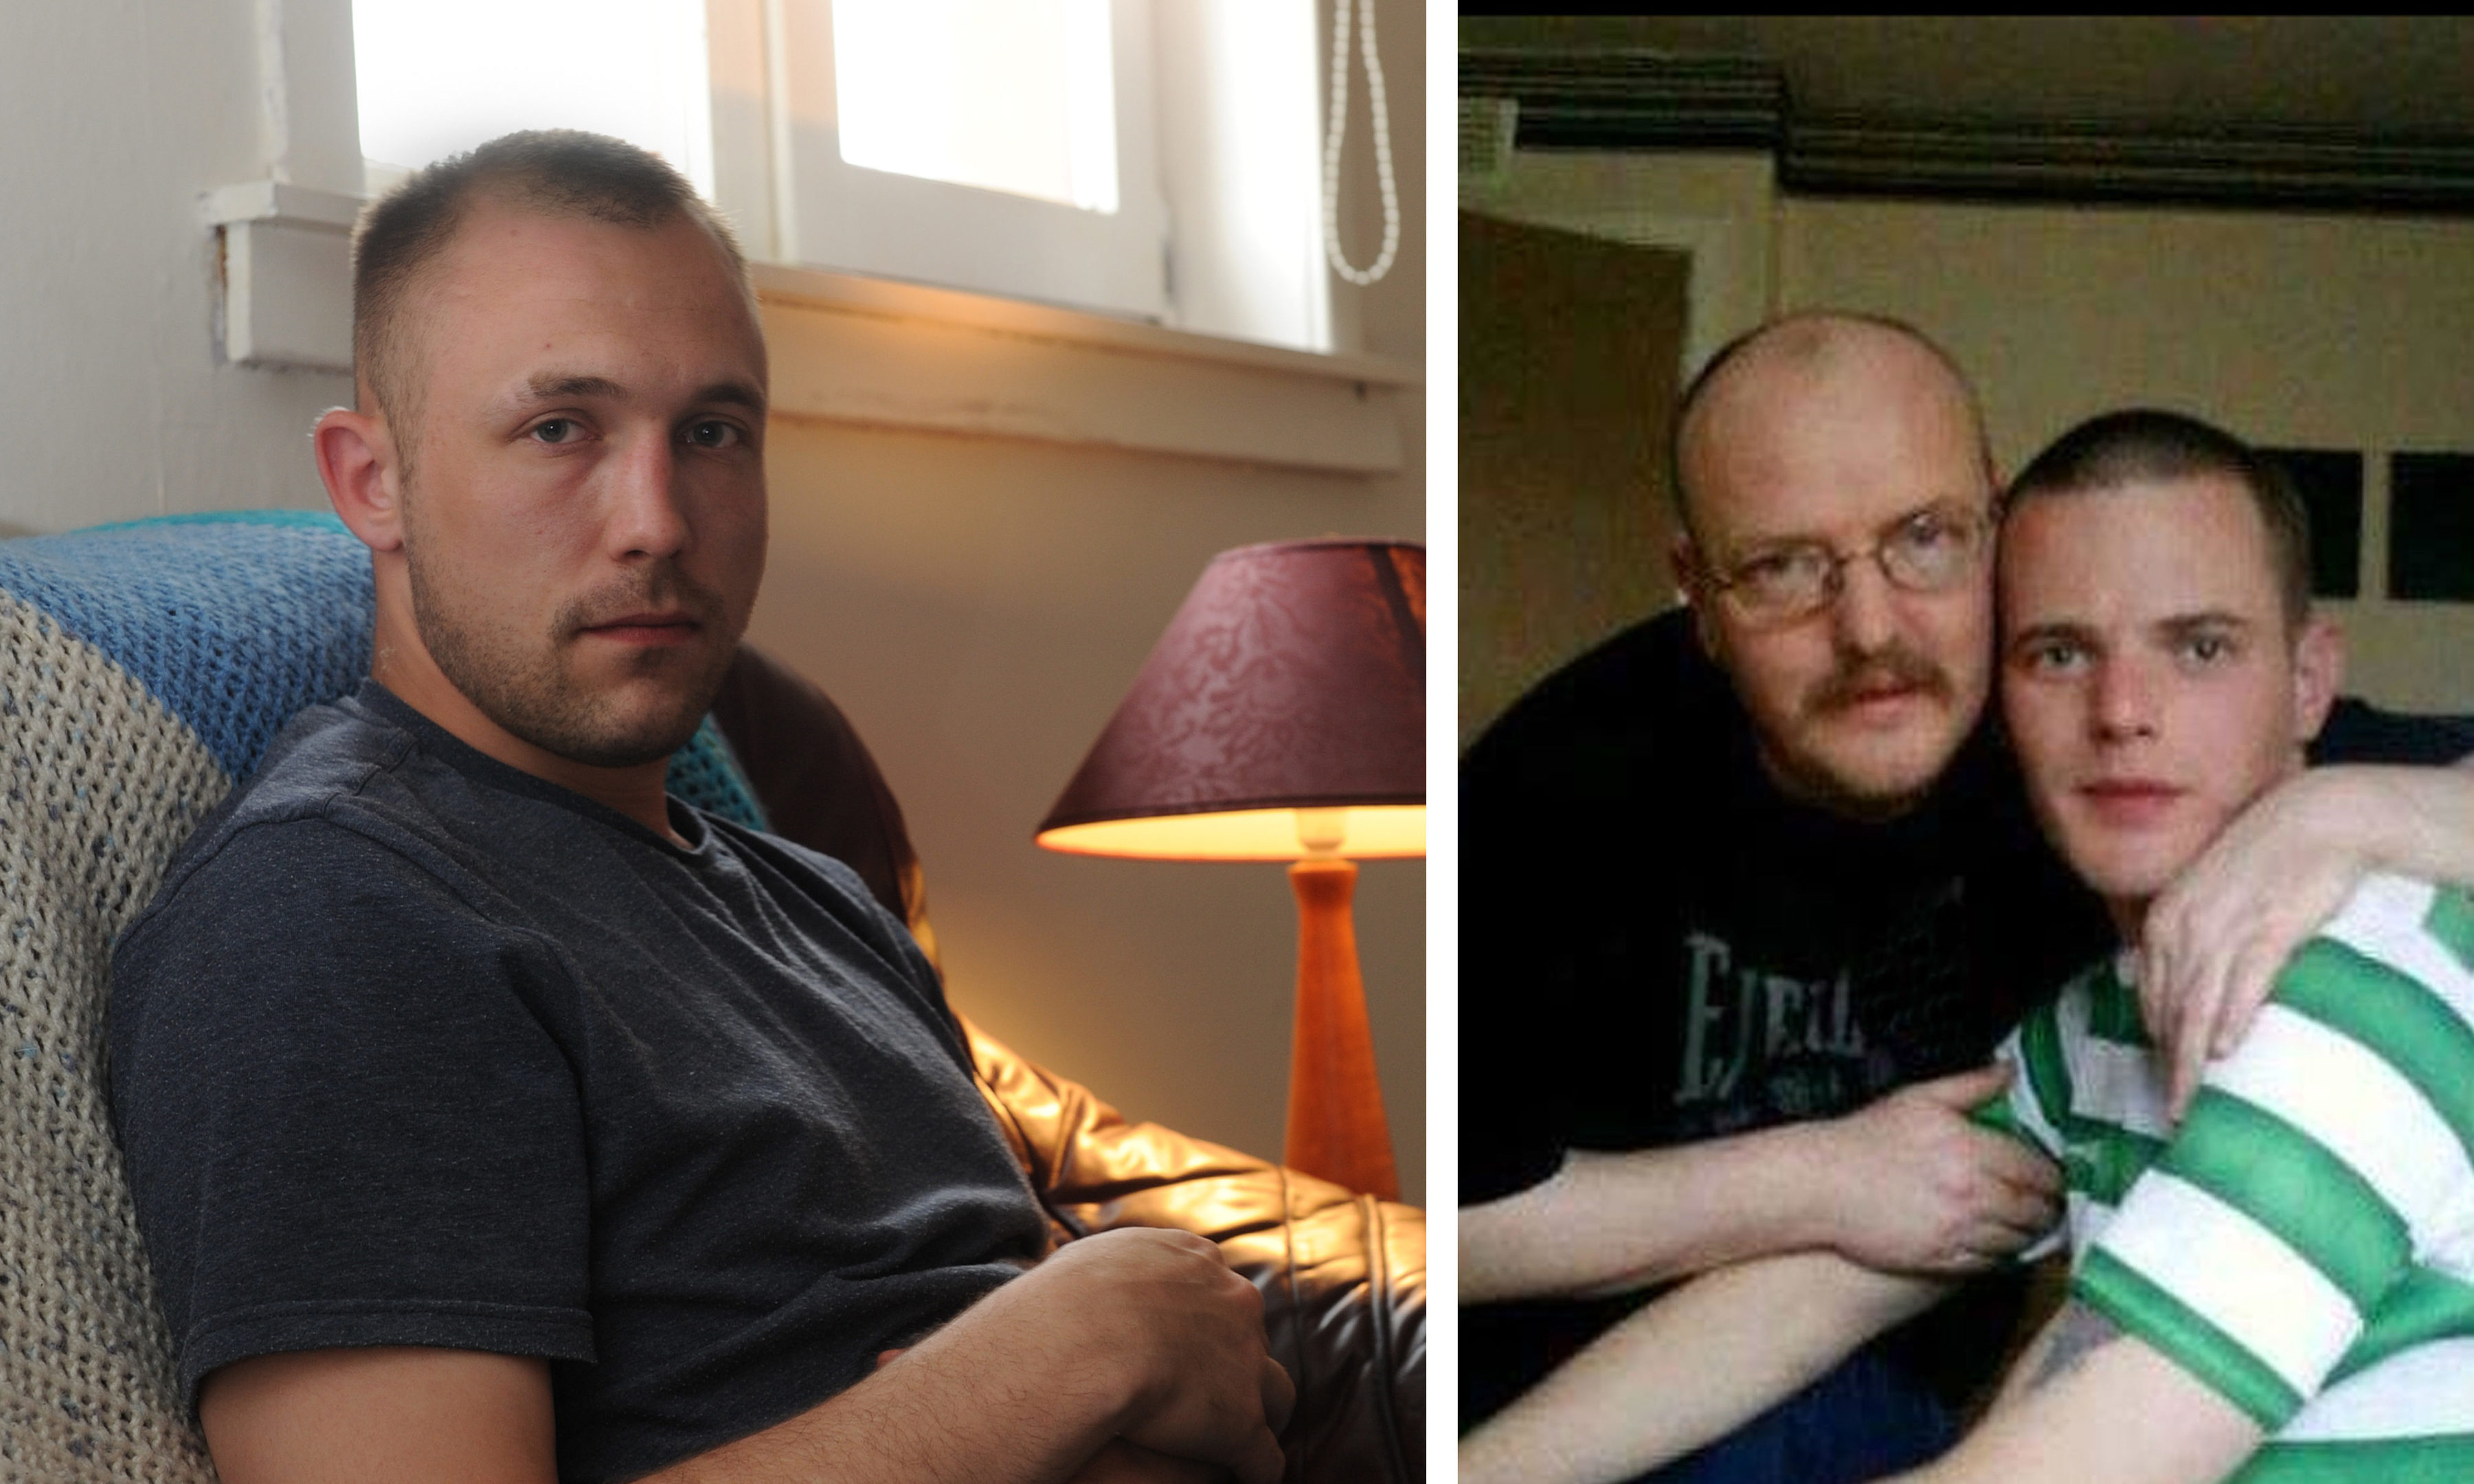 Left: Stewart McInroy. Right: Allan Bryant with his missing son, Allan Jr.